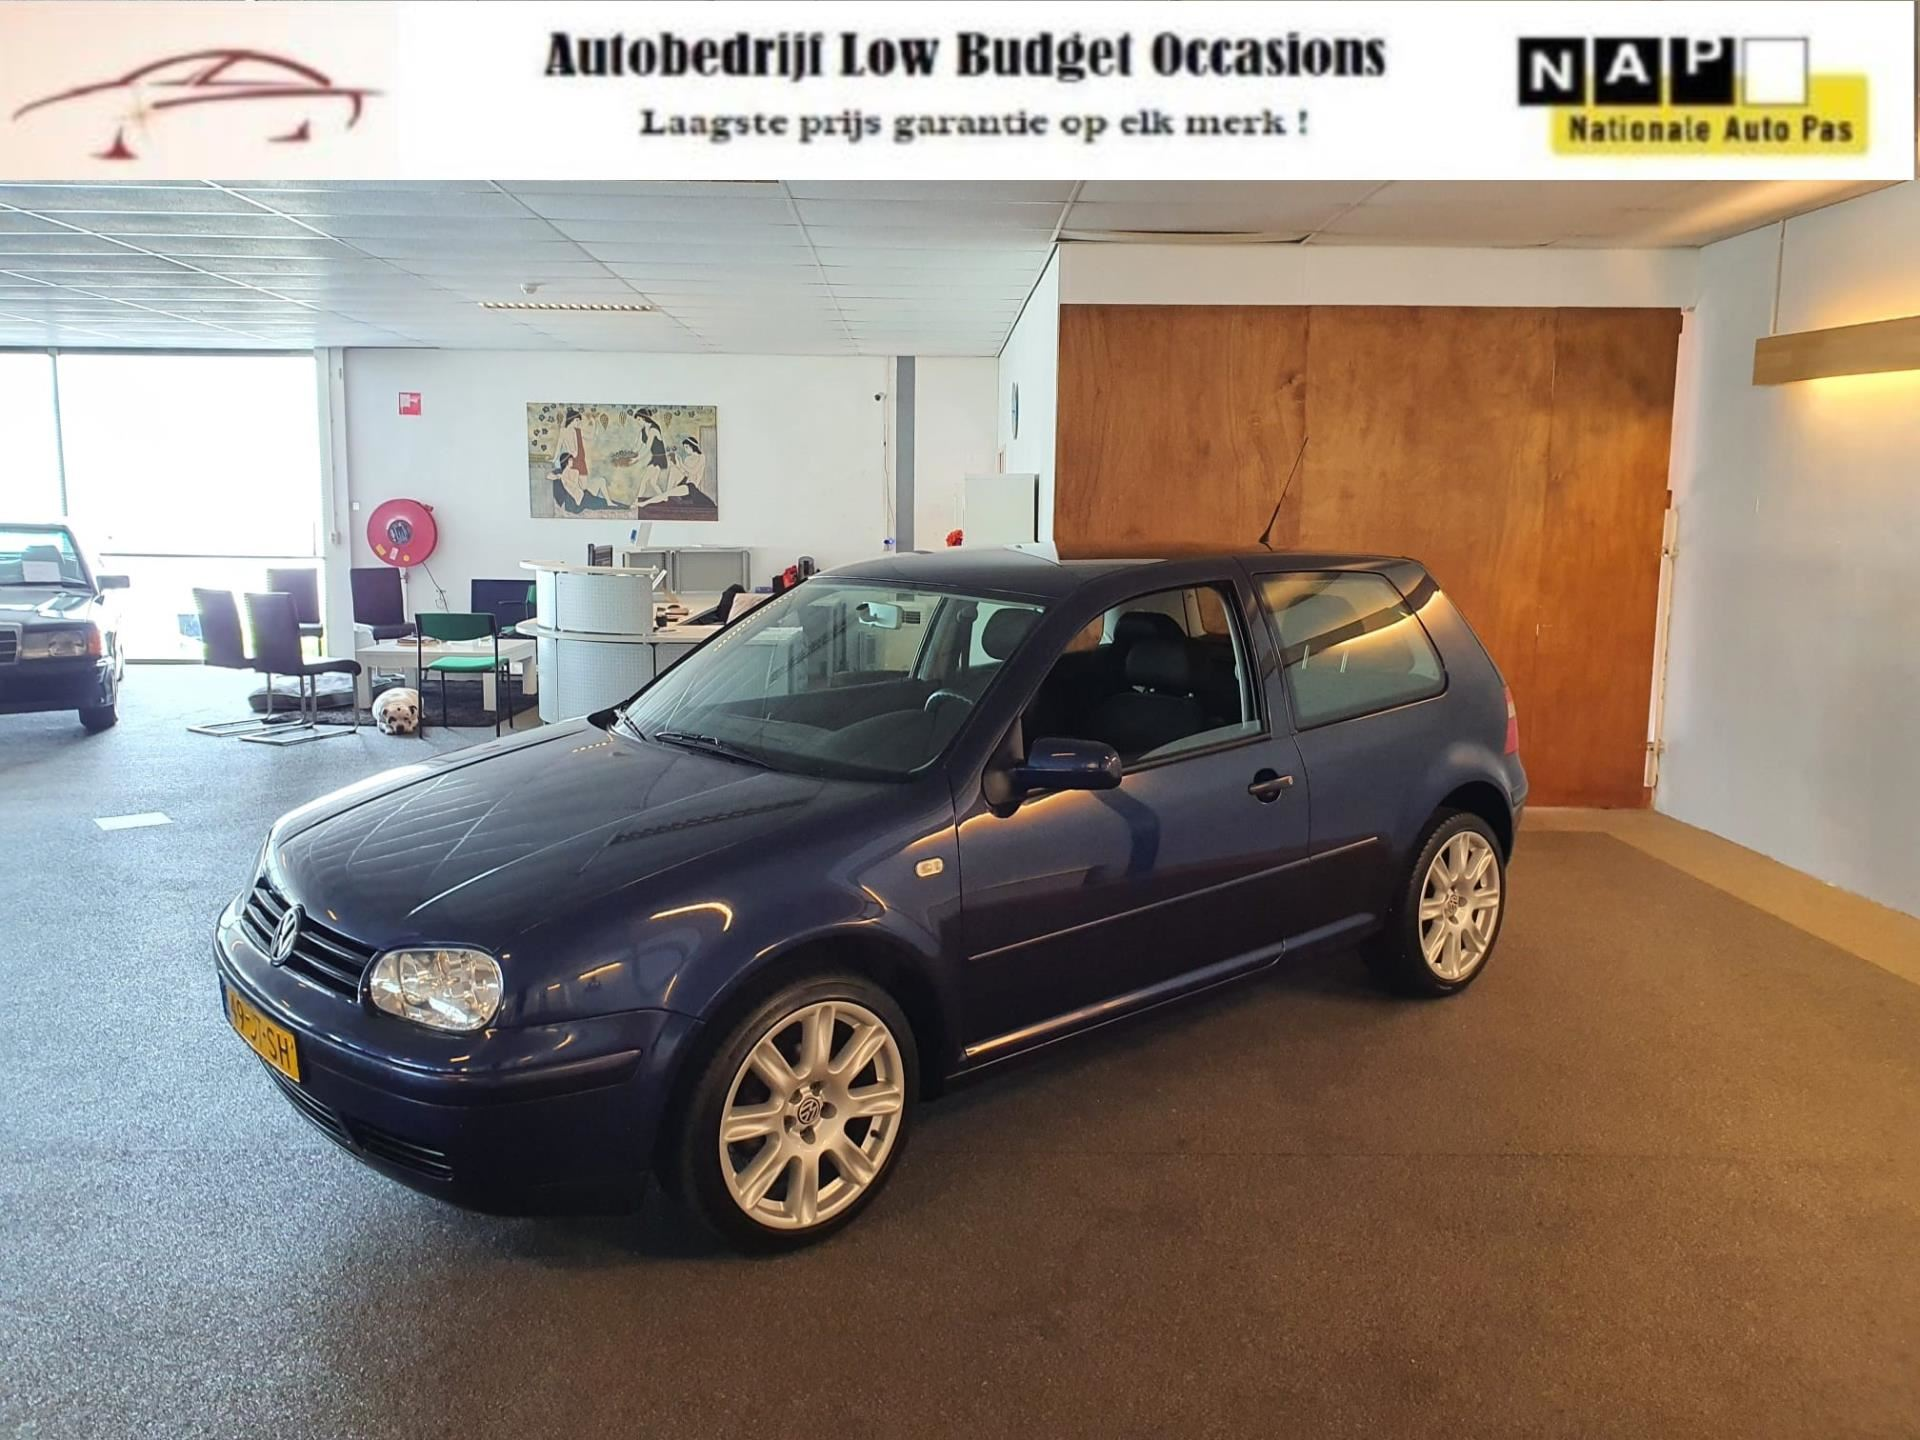 Volkswagen Golf occasion - Low Budget Occasions